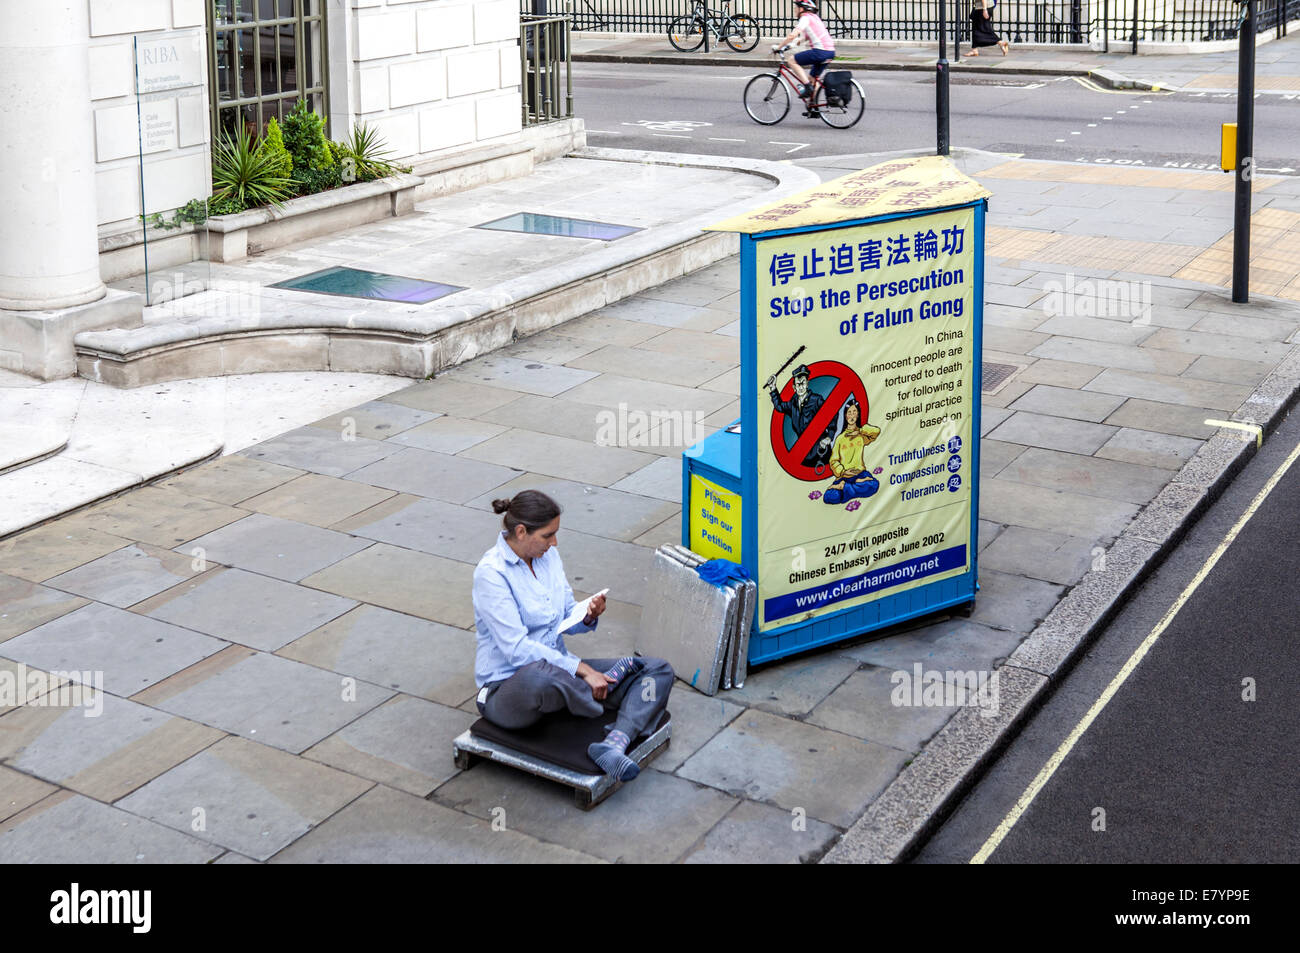 LONDON, ENGLAND - May 2012: Activists take turns on Portland Place, in front of the Chinese Embassy in London to - Stock Image